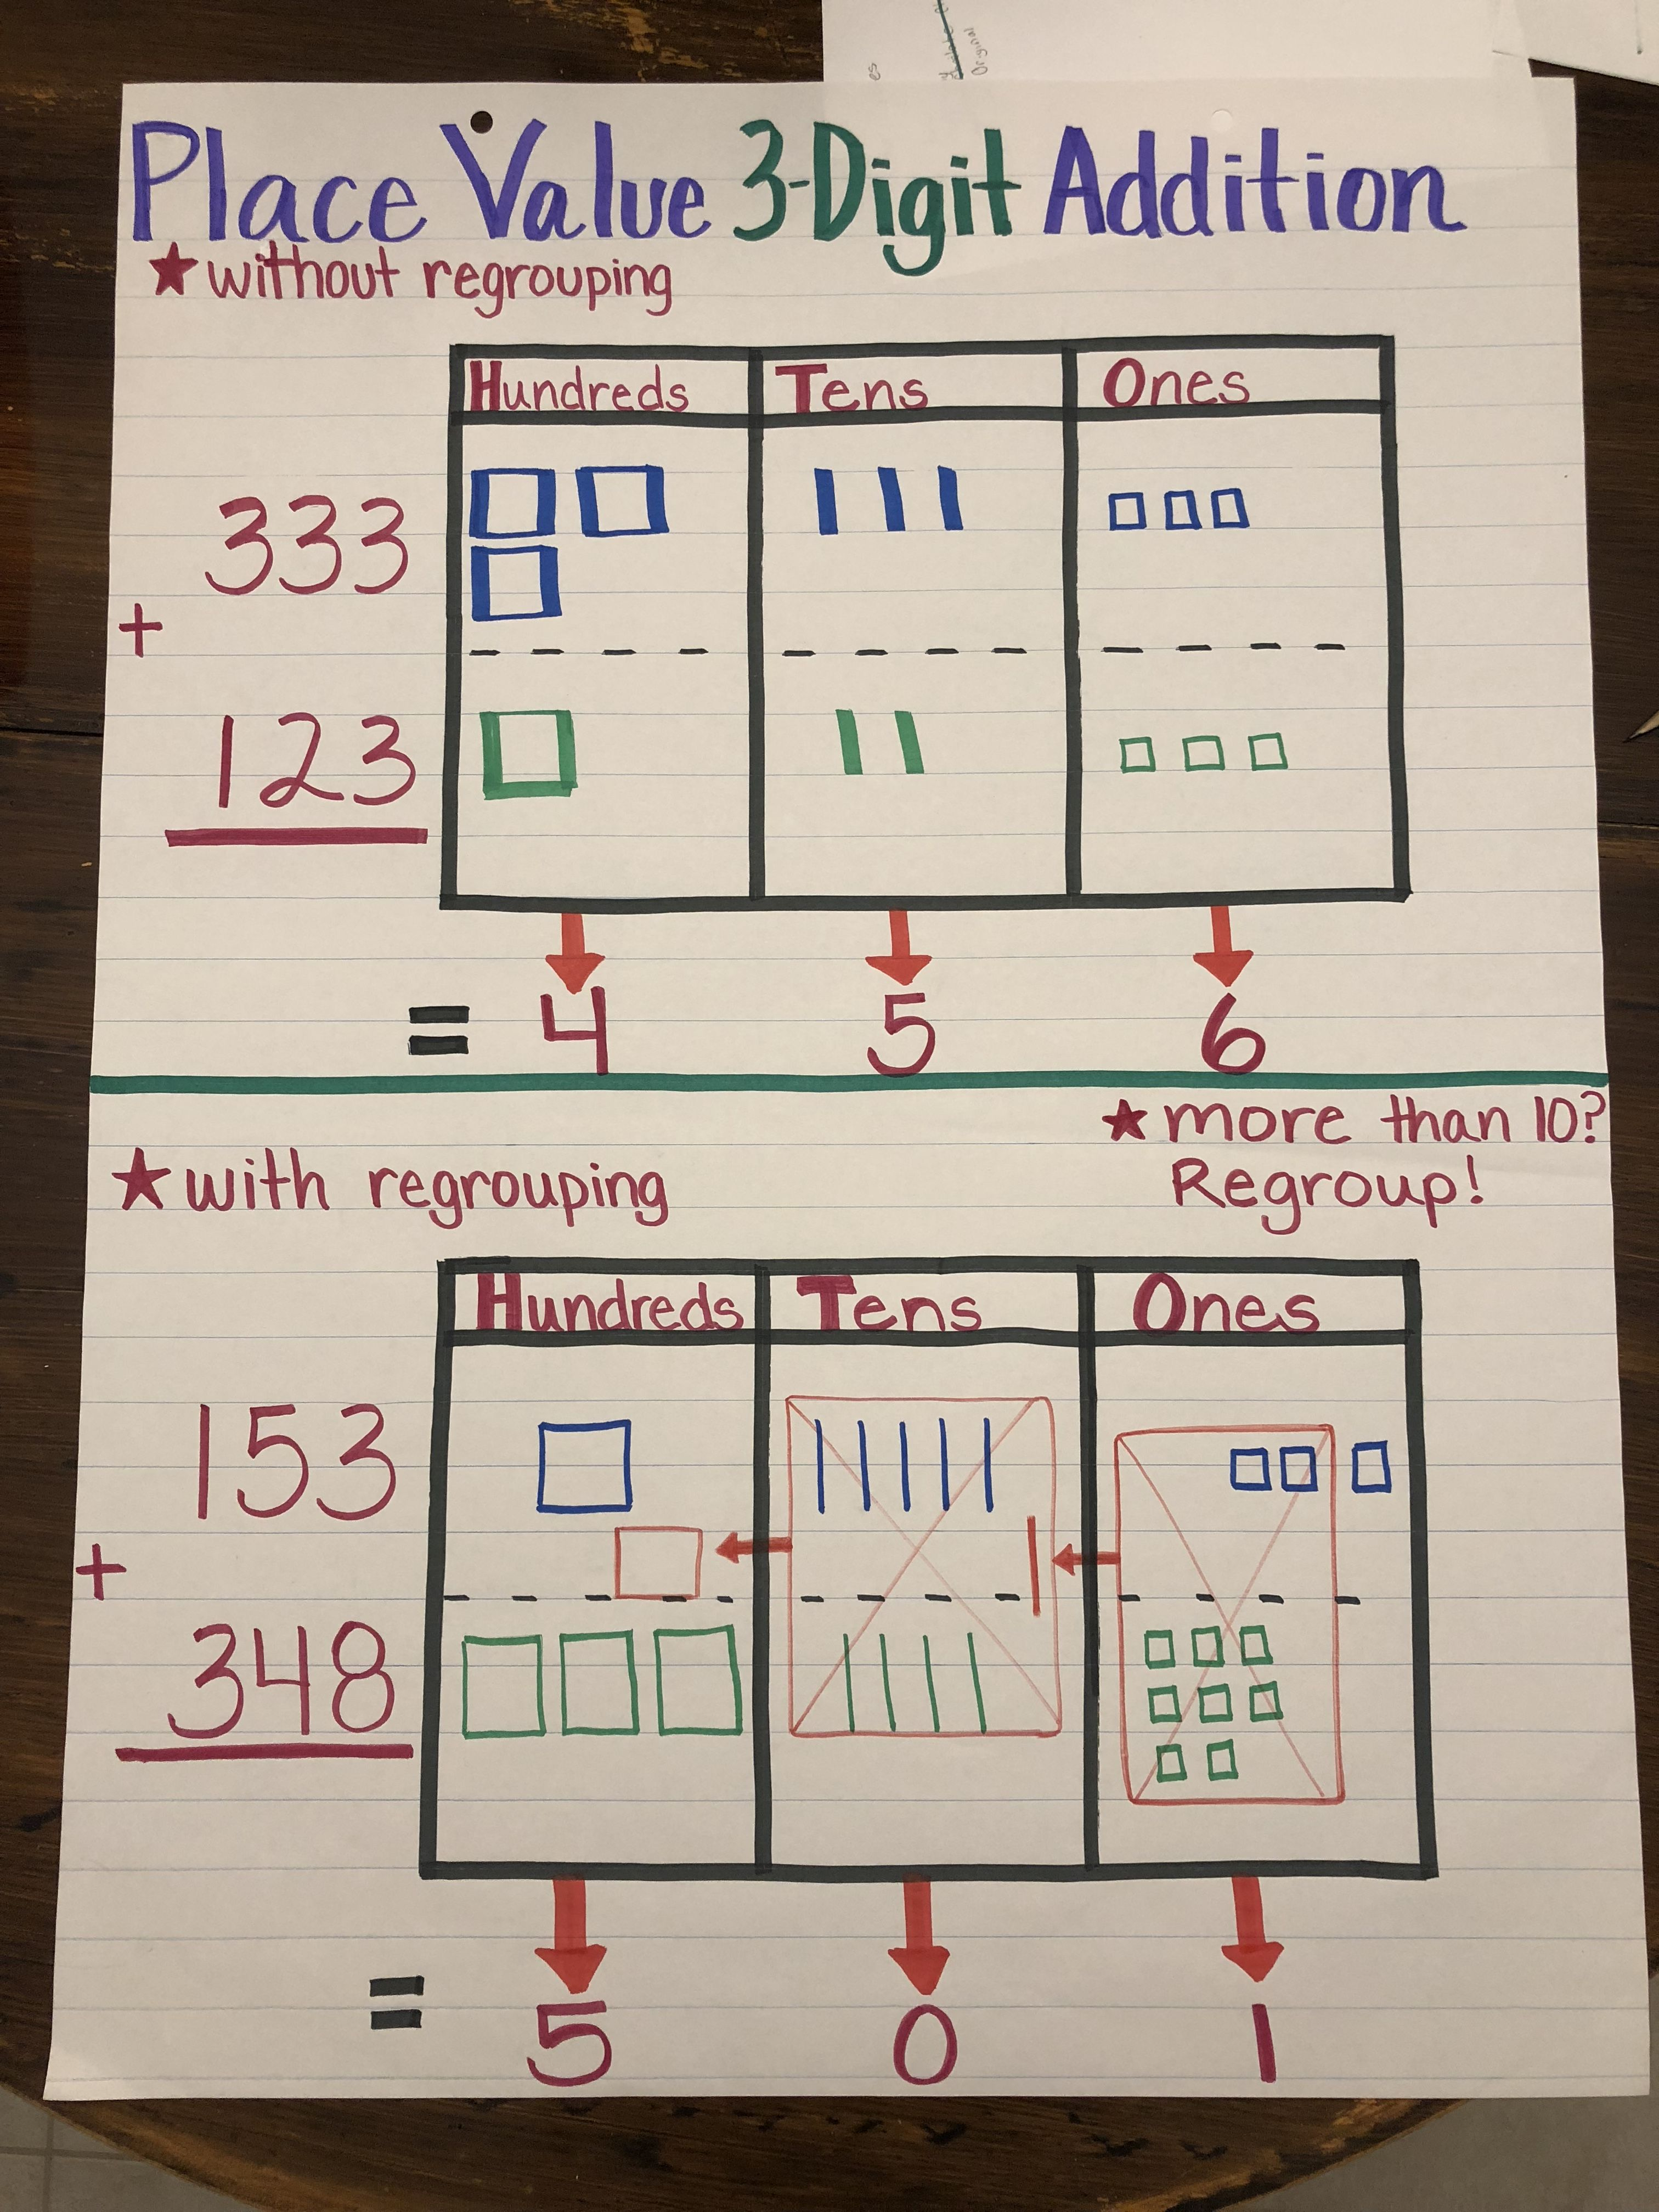 medium resolution of Place Value 3-Digit Addition with and without regrouping anchor chart.    Math charts